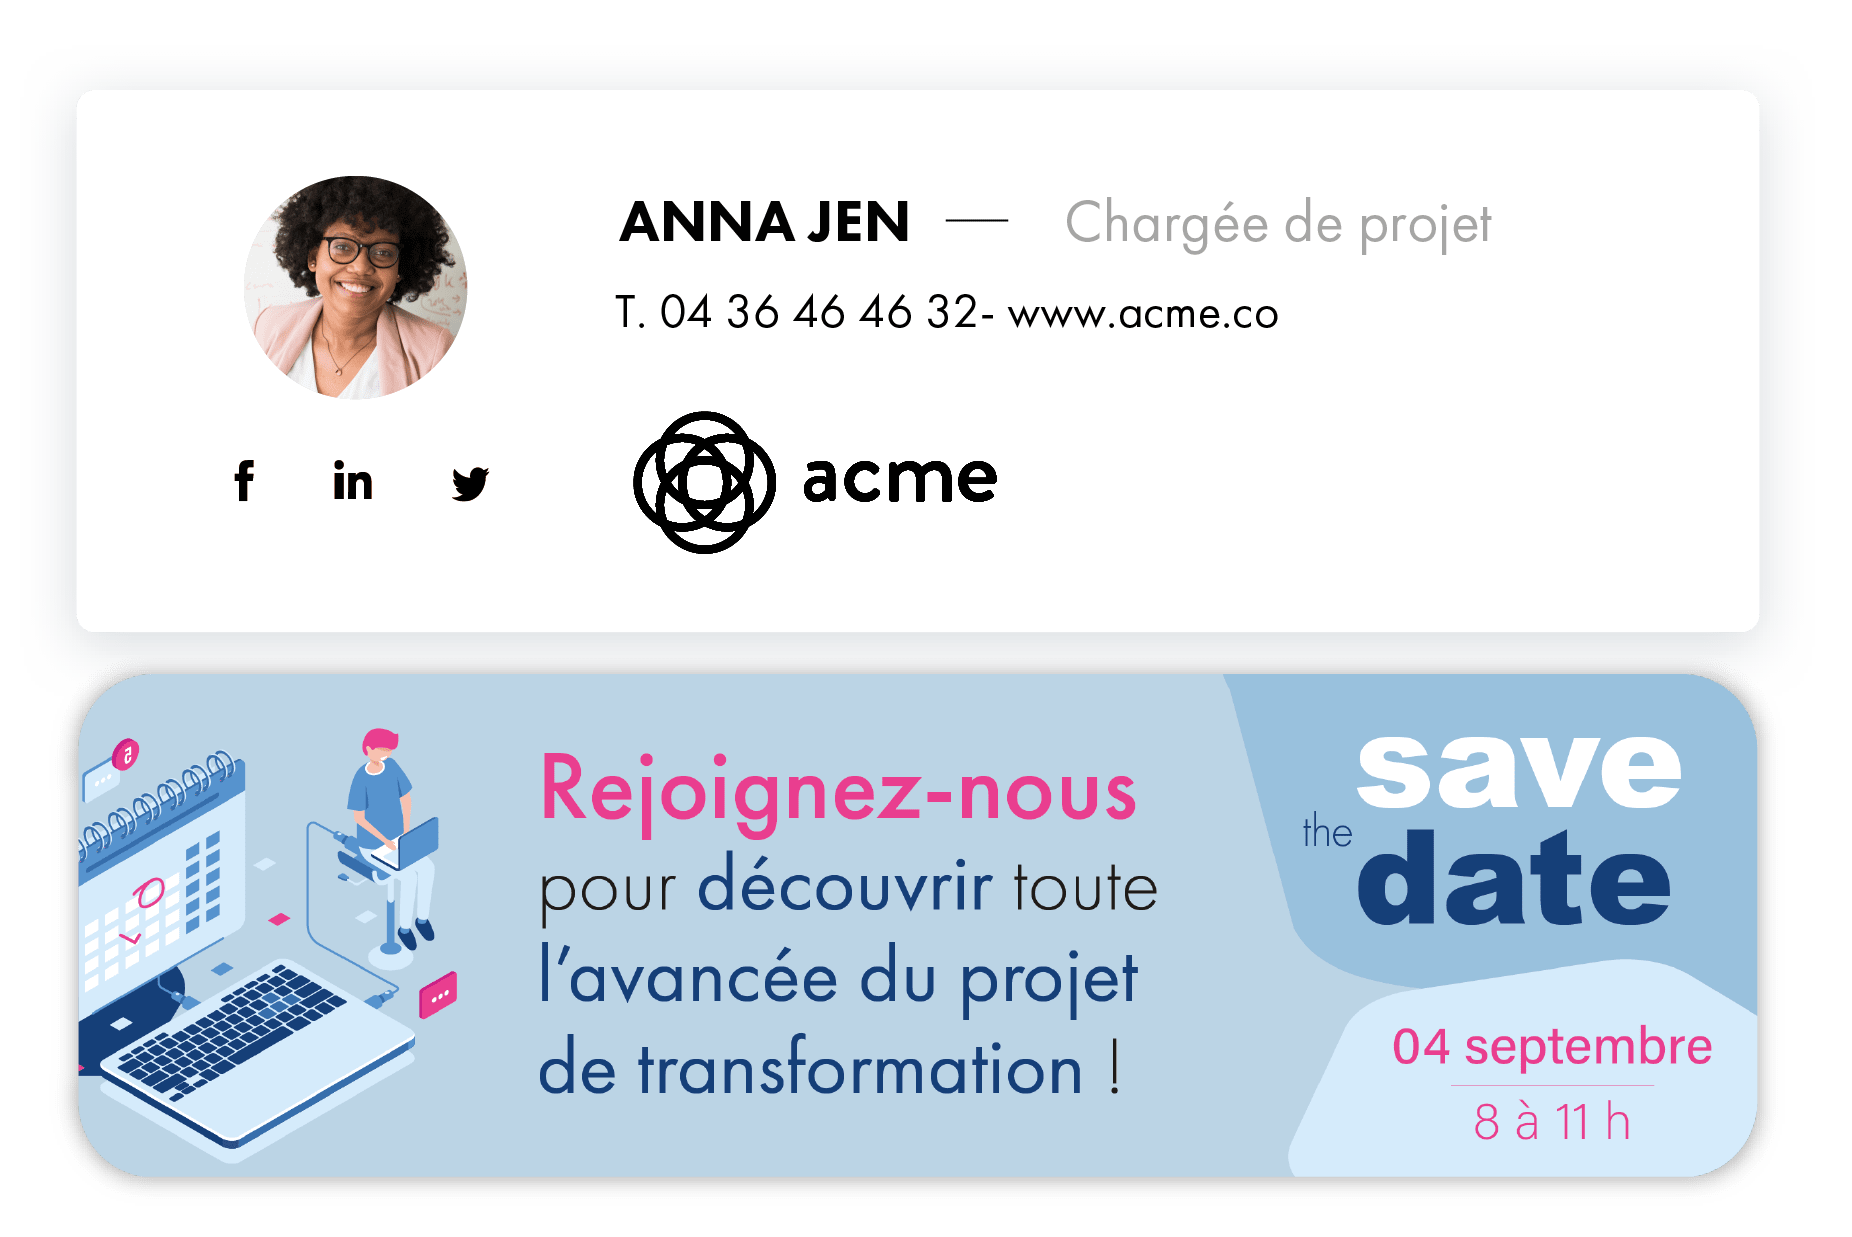 banniere email evenement - save the date - signature mail